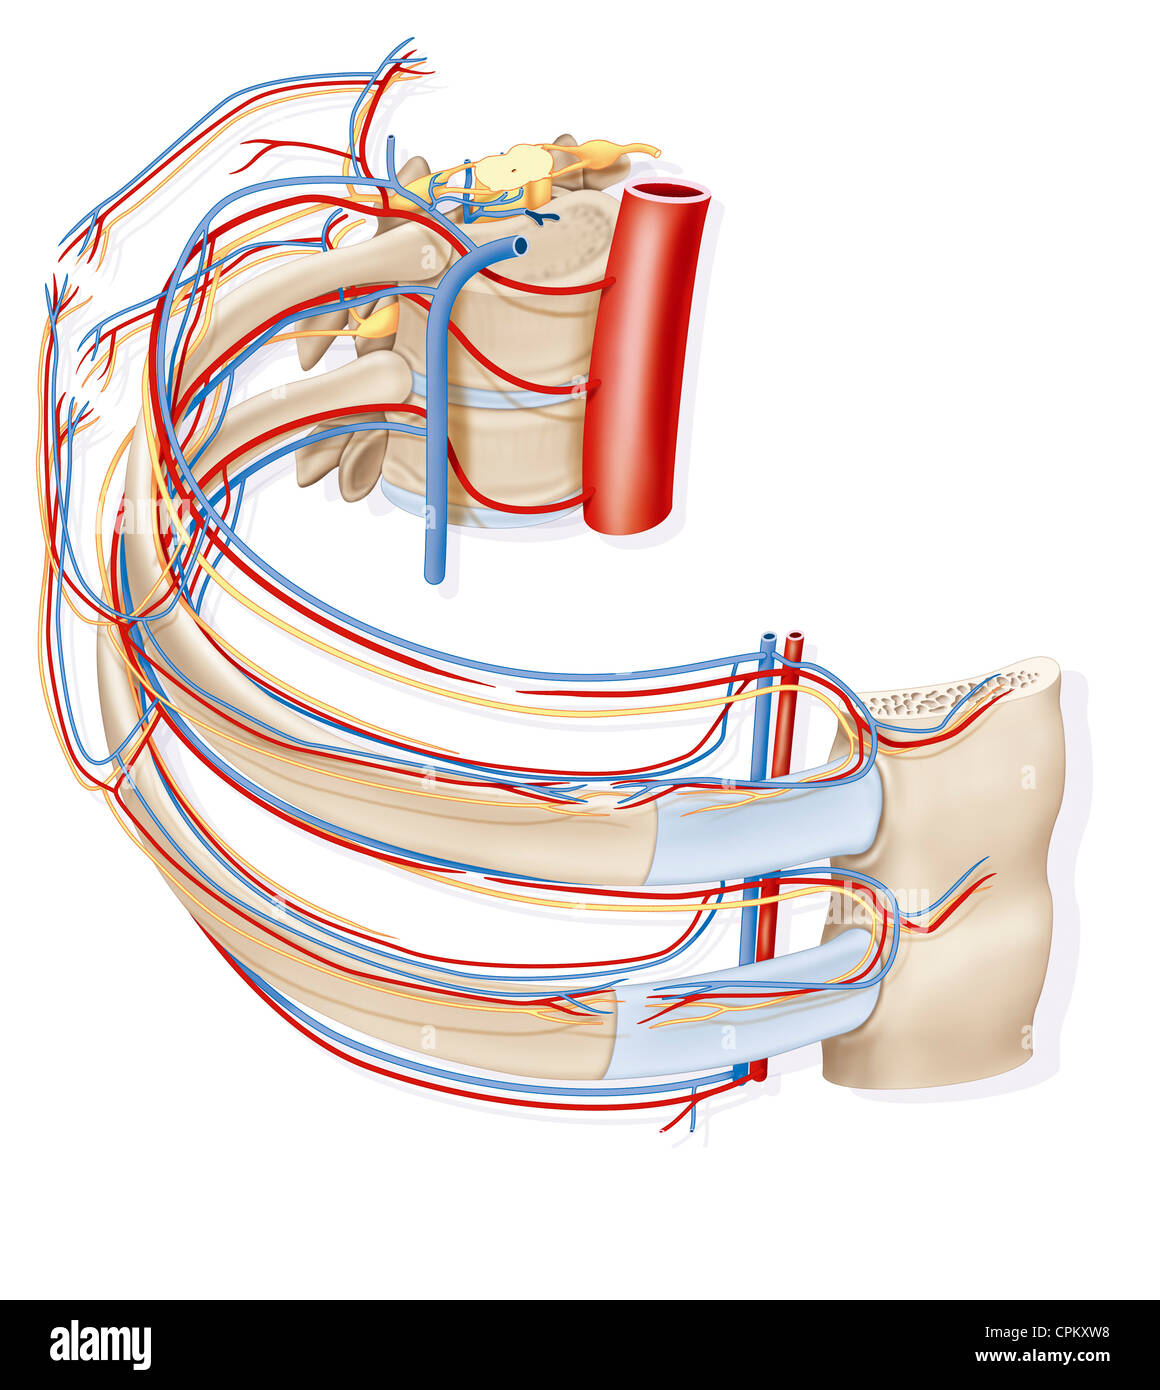 Intercostal Arteries Stock Photos & Intercostal Arteries Stock ...